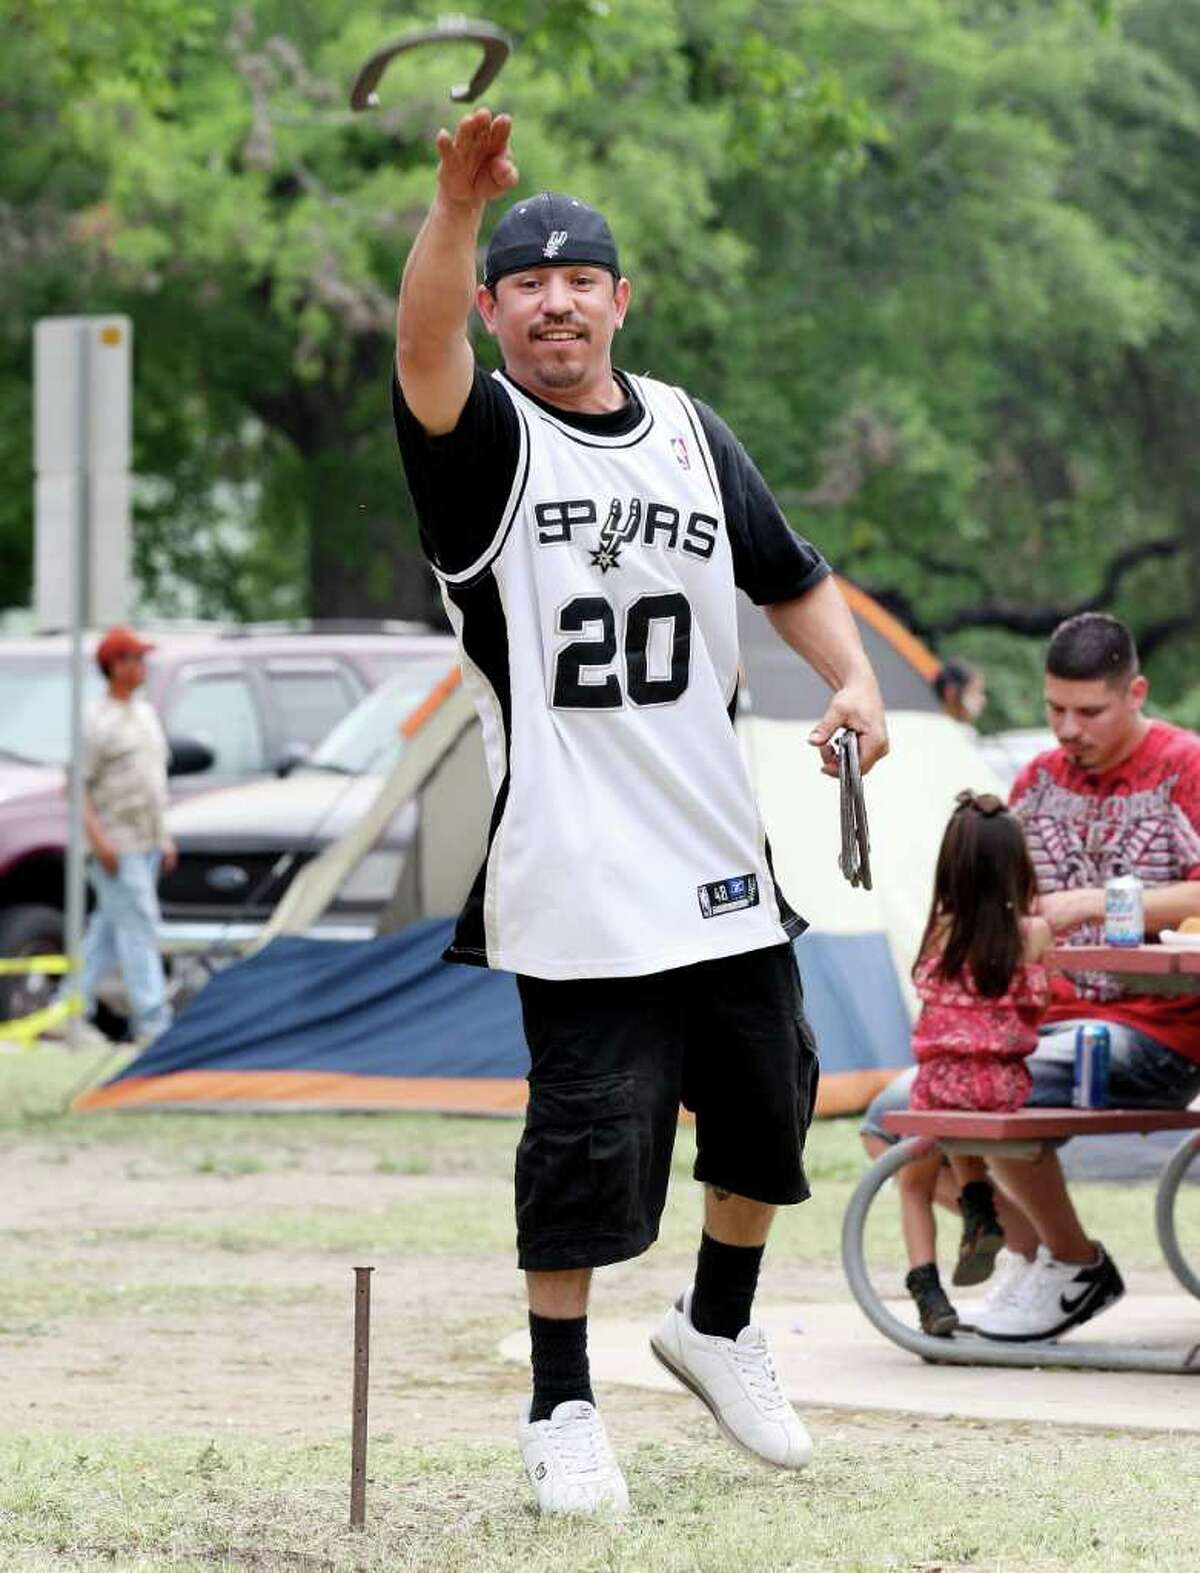 Nathan Ortiz plays horseshoes Sunday April 24, 2011 at Brackenridge Park while spending Easter with his family. (PHOTO BY EDWARD A. ORNELAS/eaornelas@express-news.net)